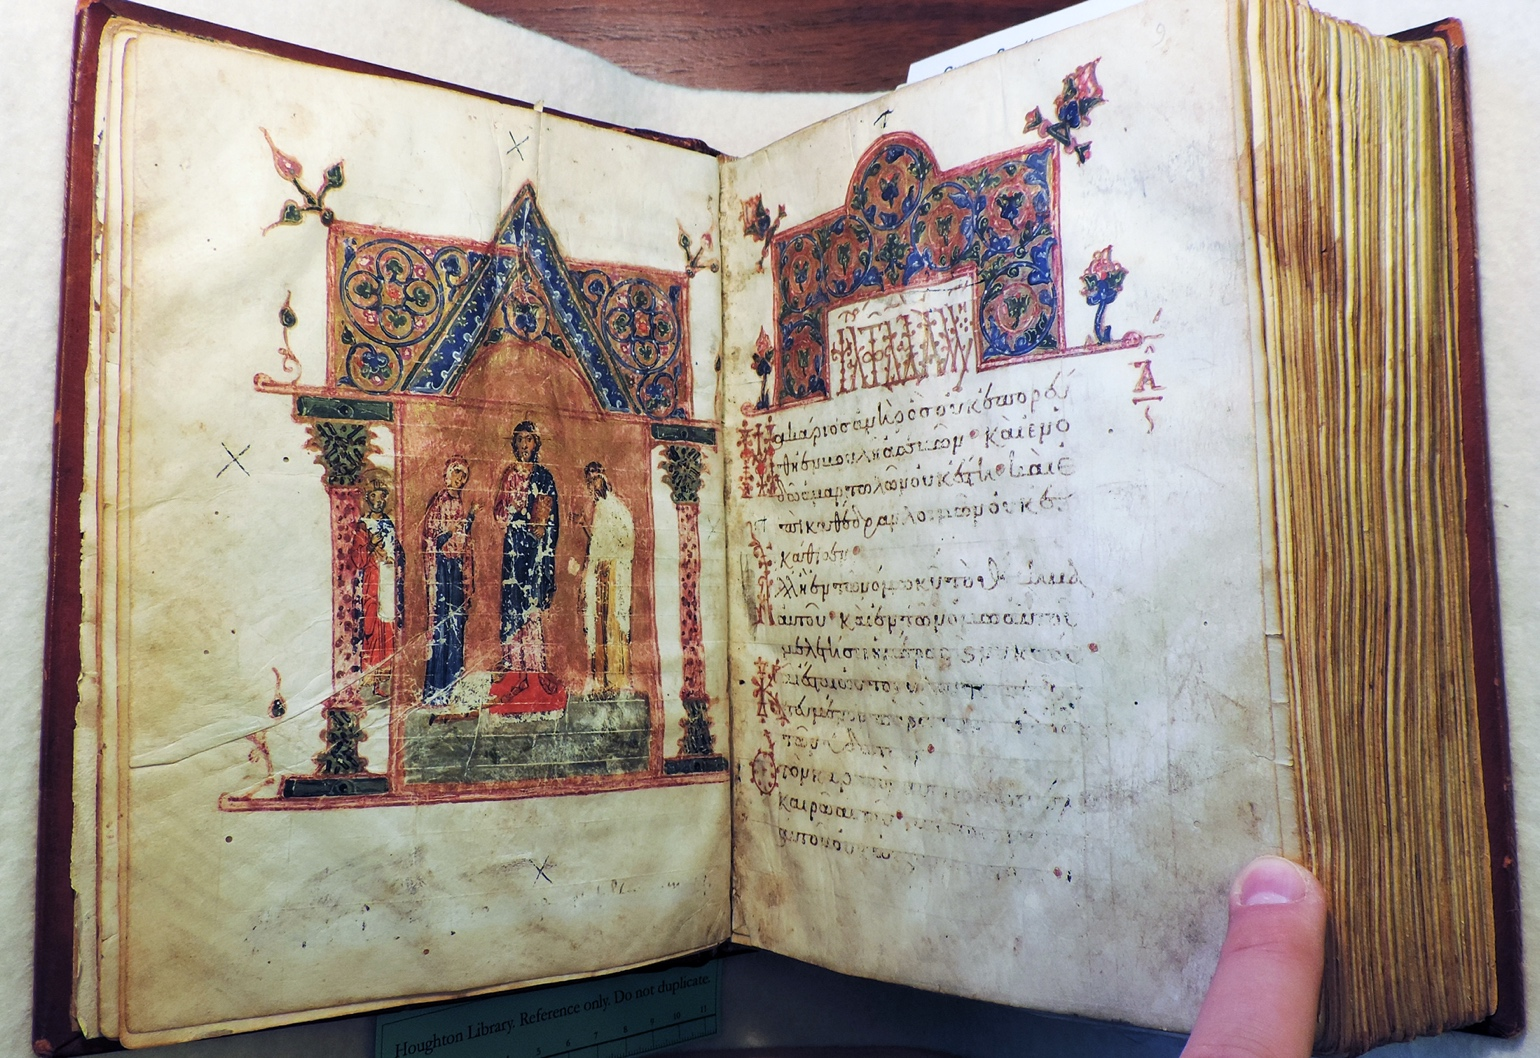 Peddling Wonderment Selling Privilege Launching The Market For Medieval Books In Antebellum New York